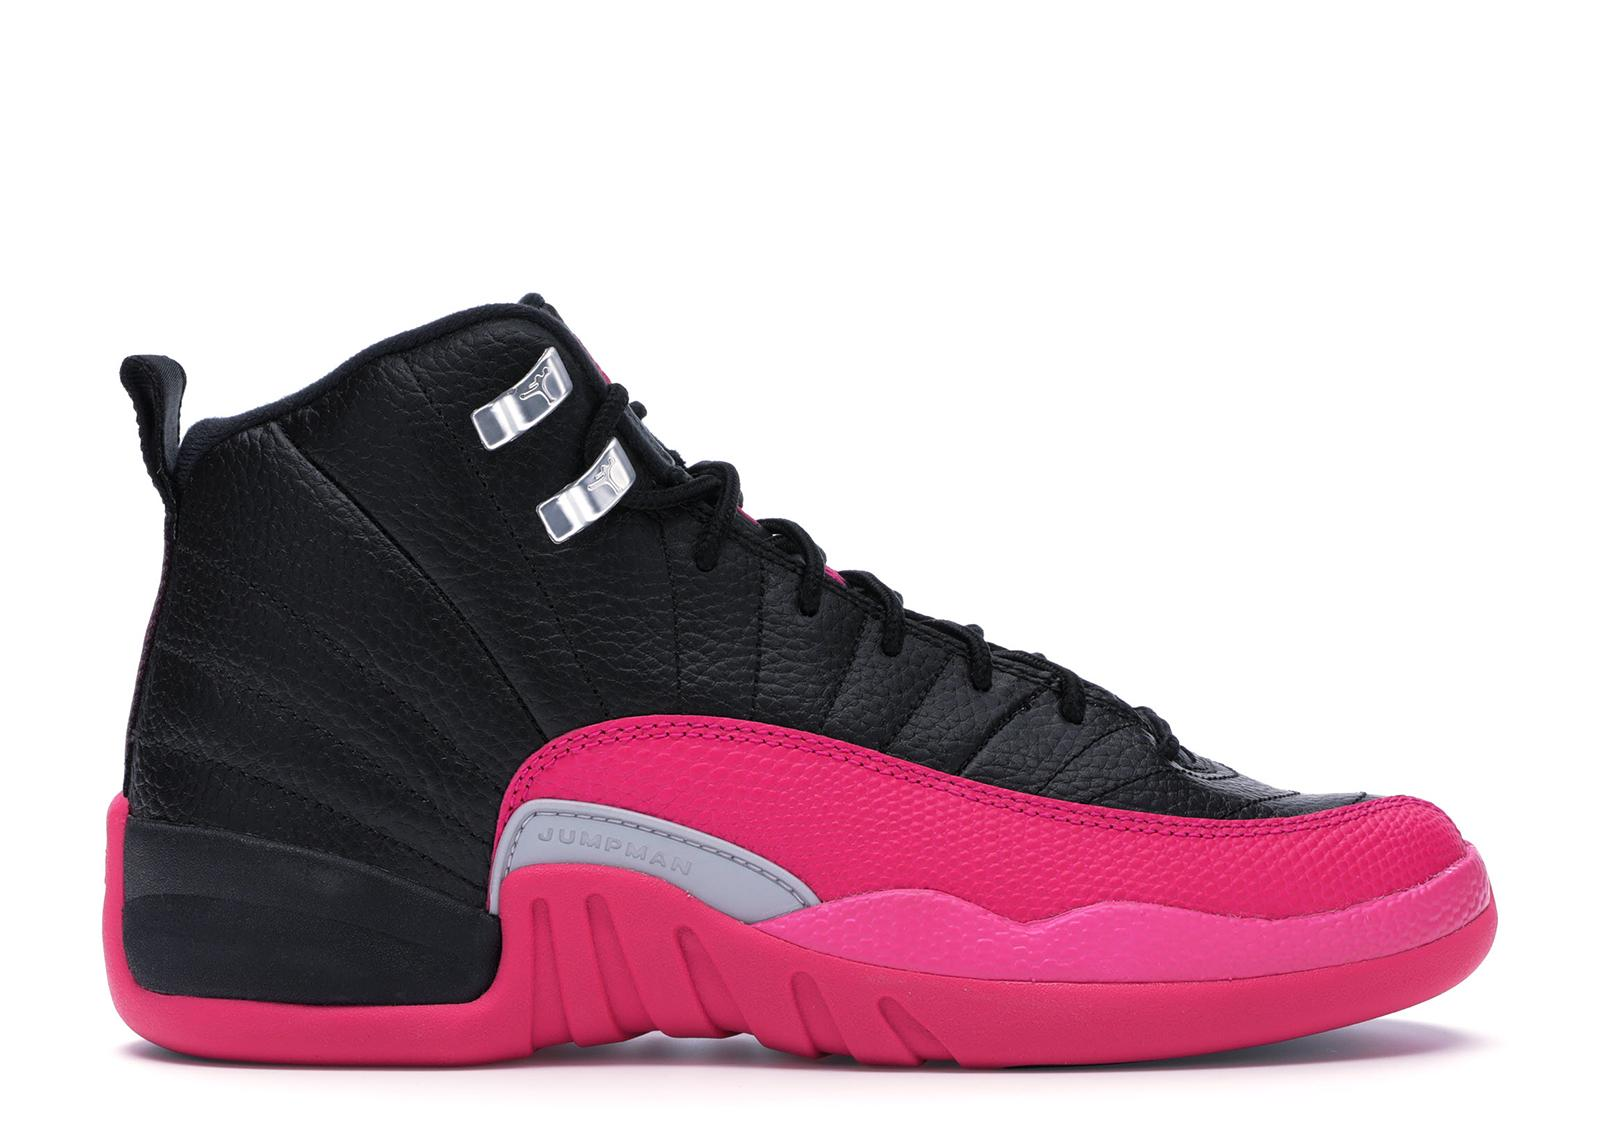 e232b57b8835 Lyst - Nike 12 Retro Black Deadly Pink (gs) in Pink for Men